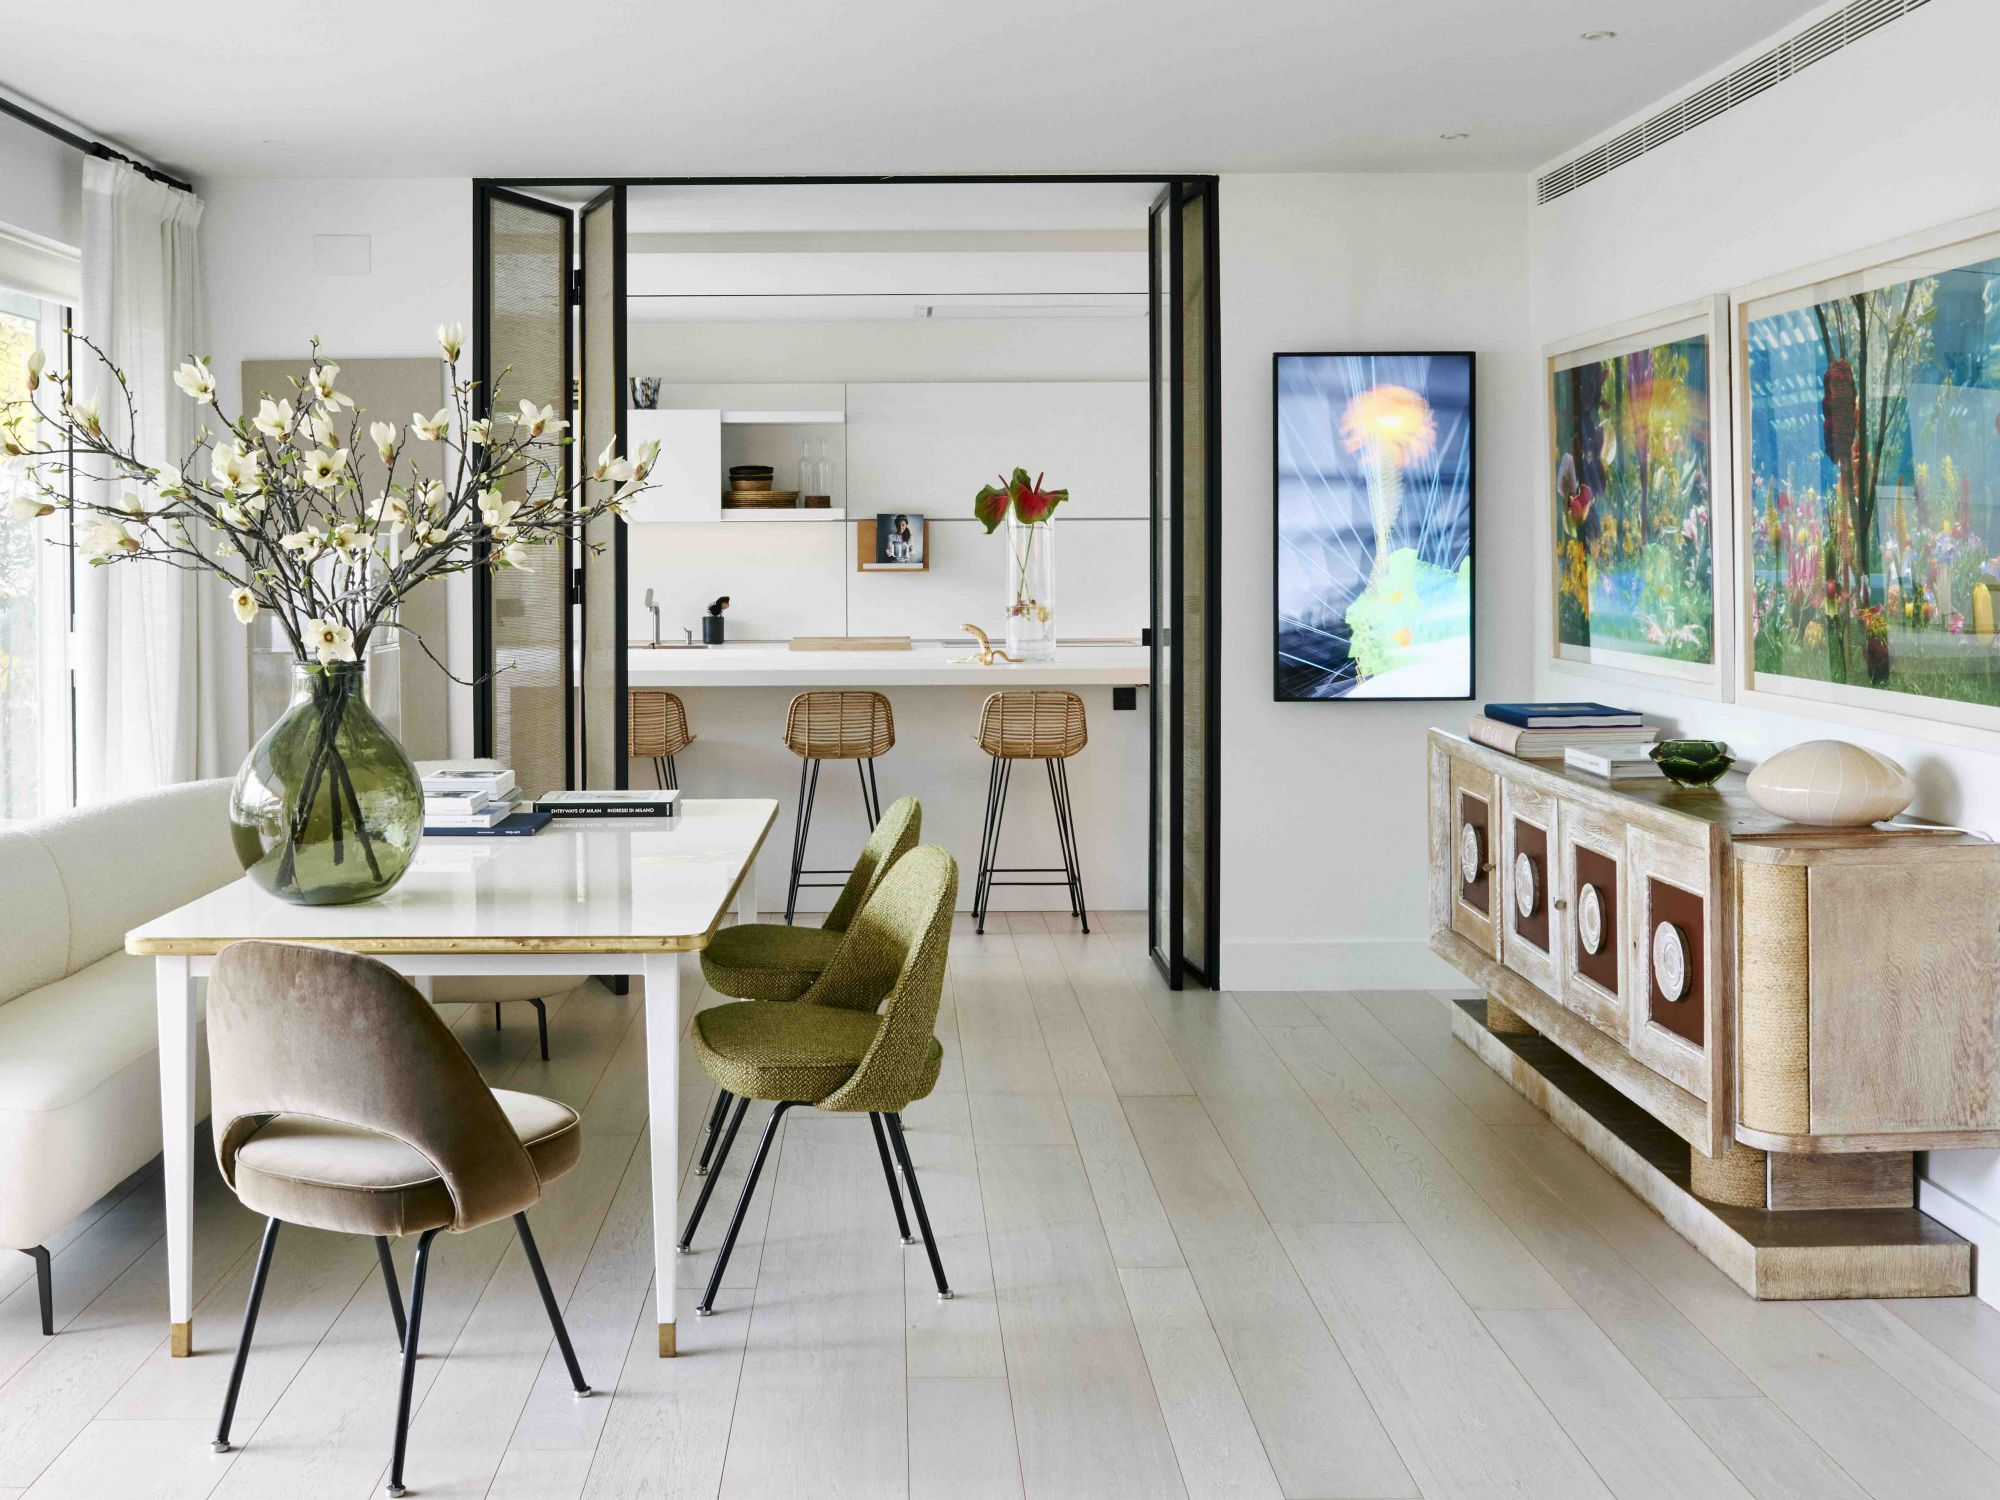 Home Tour: An Open-Plan Living Room and Colourful Accents in a Barcelona Apartment